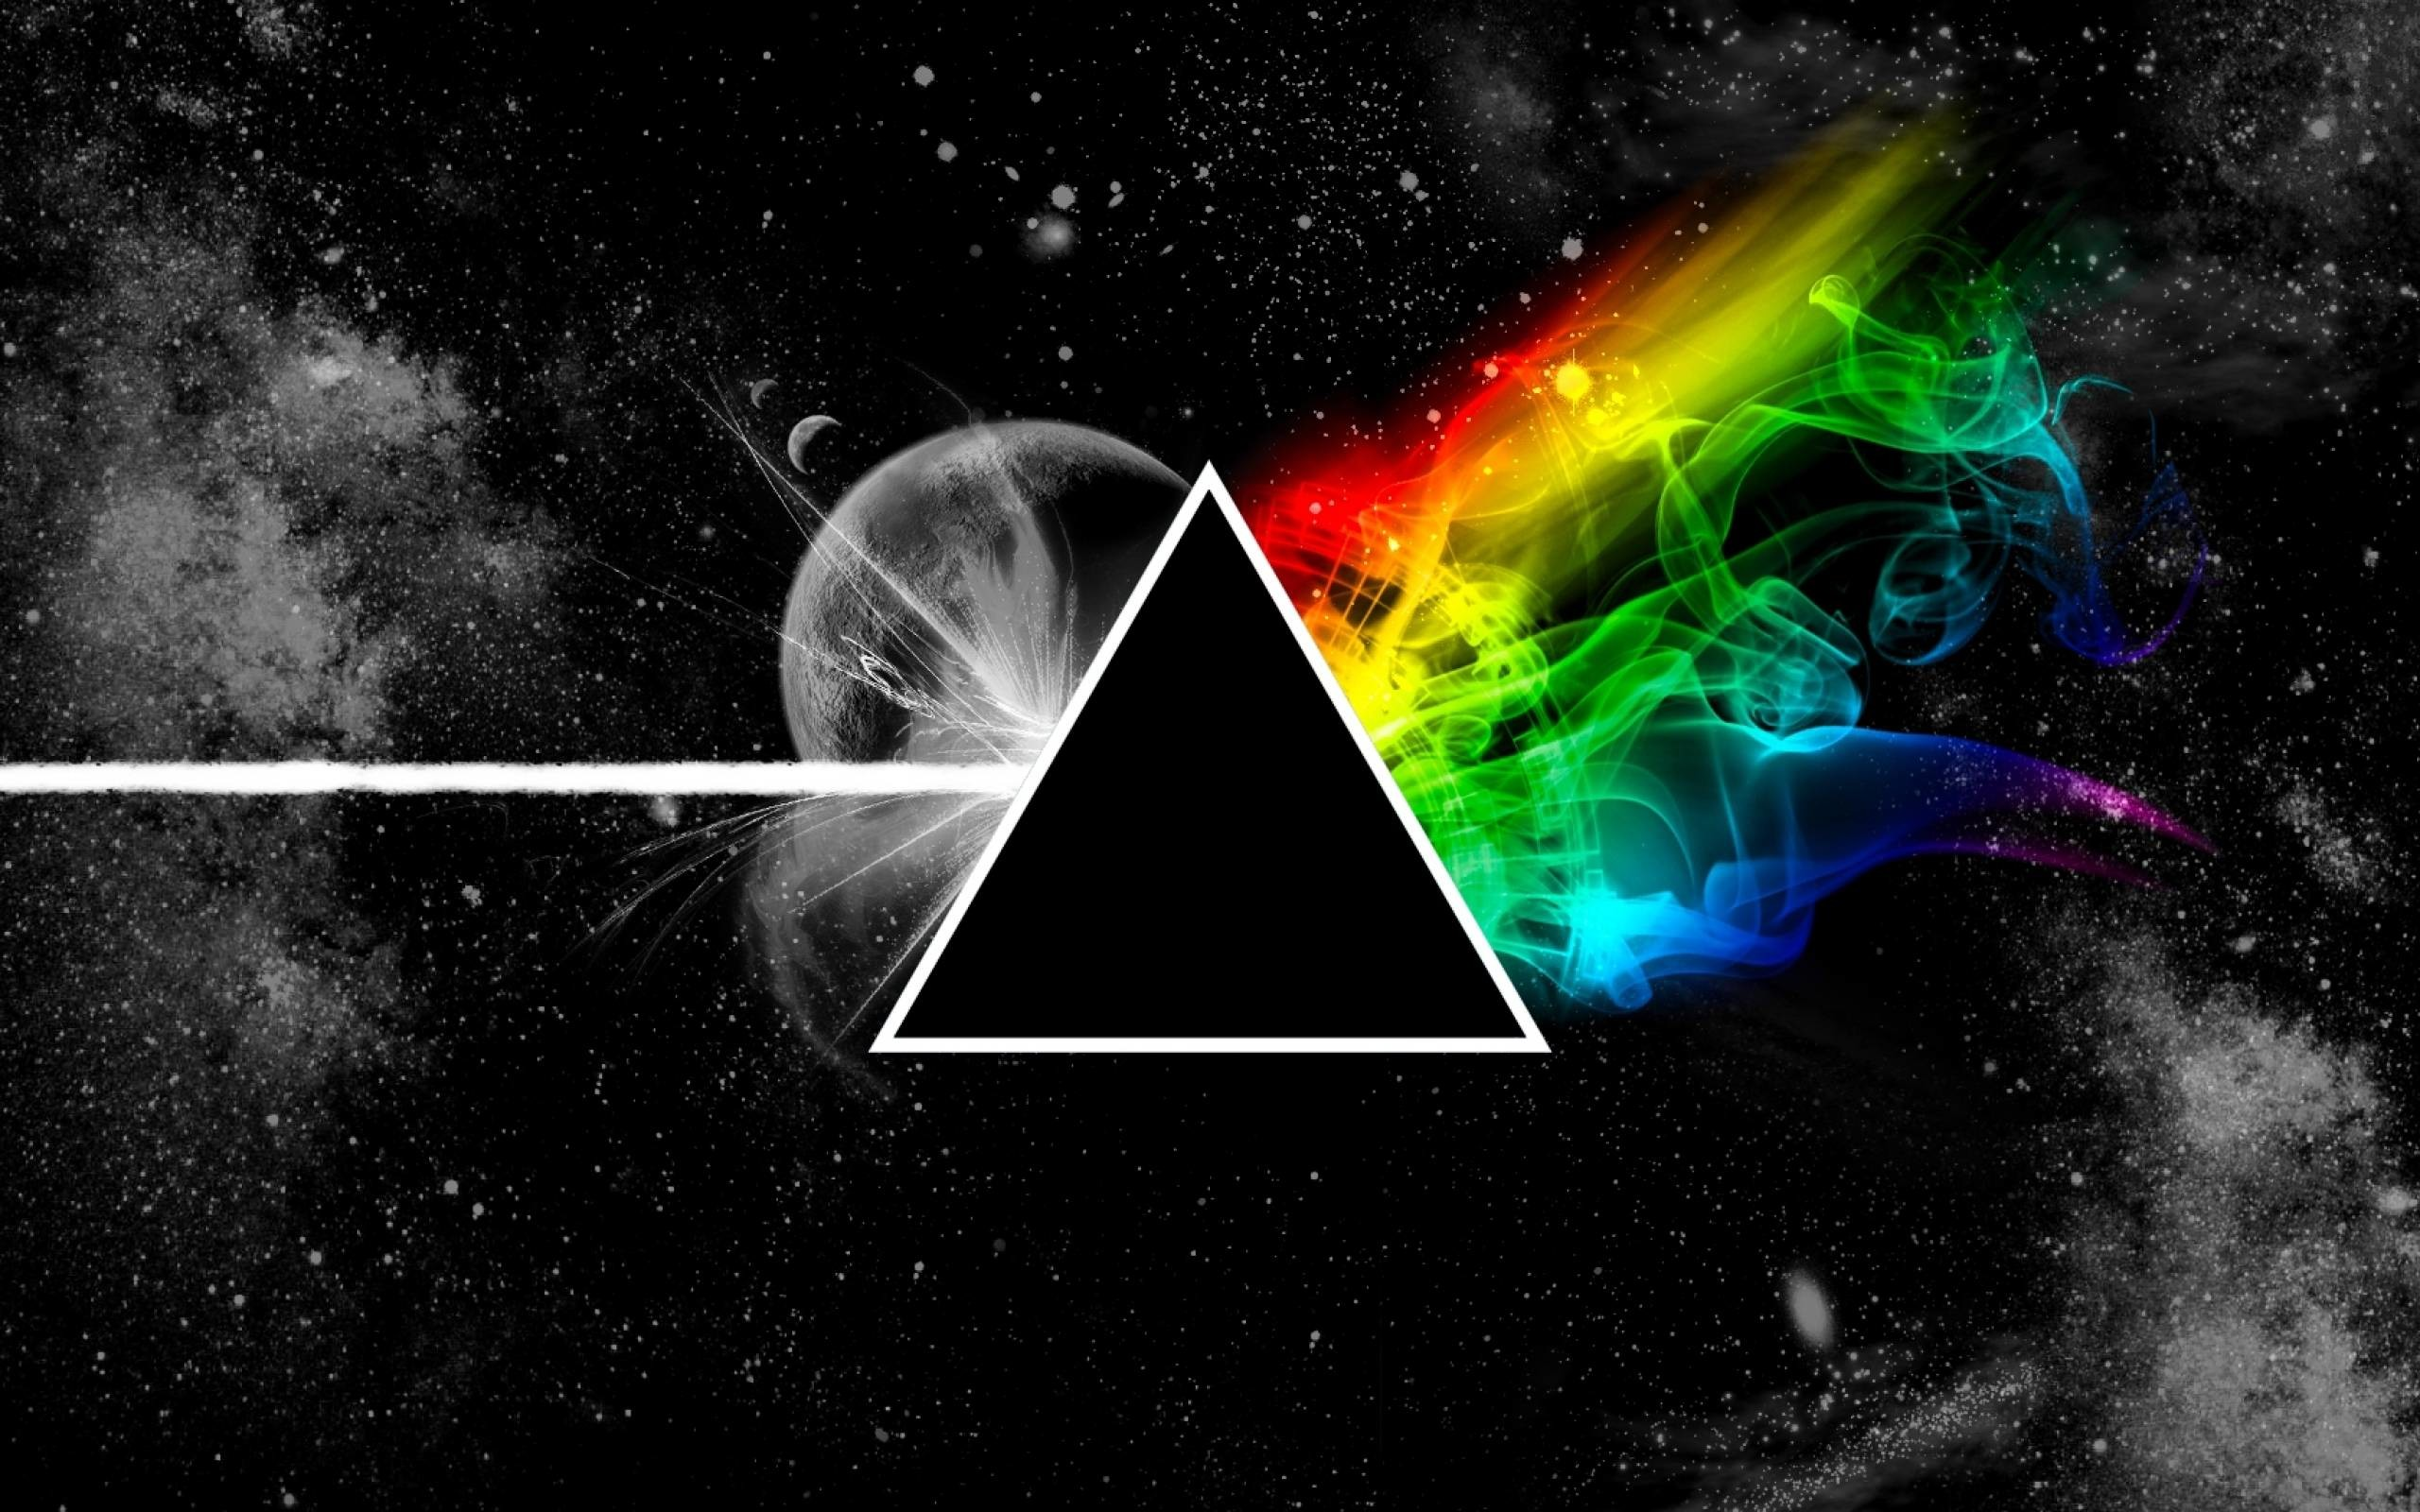 pink floyd wallpapers screensavers (74+ images)